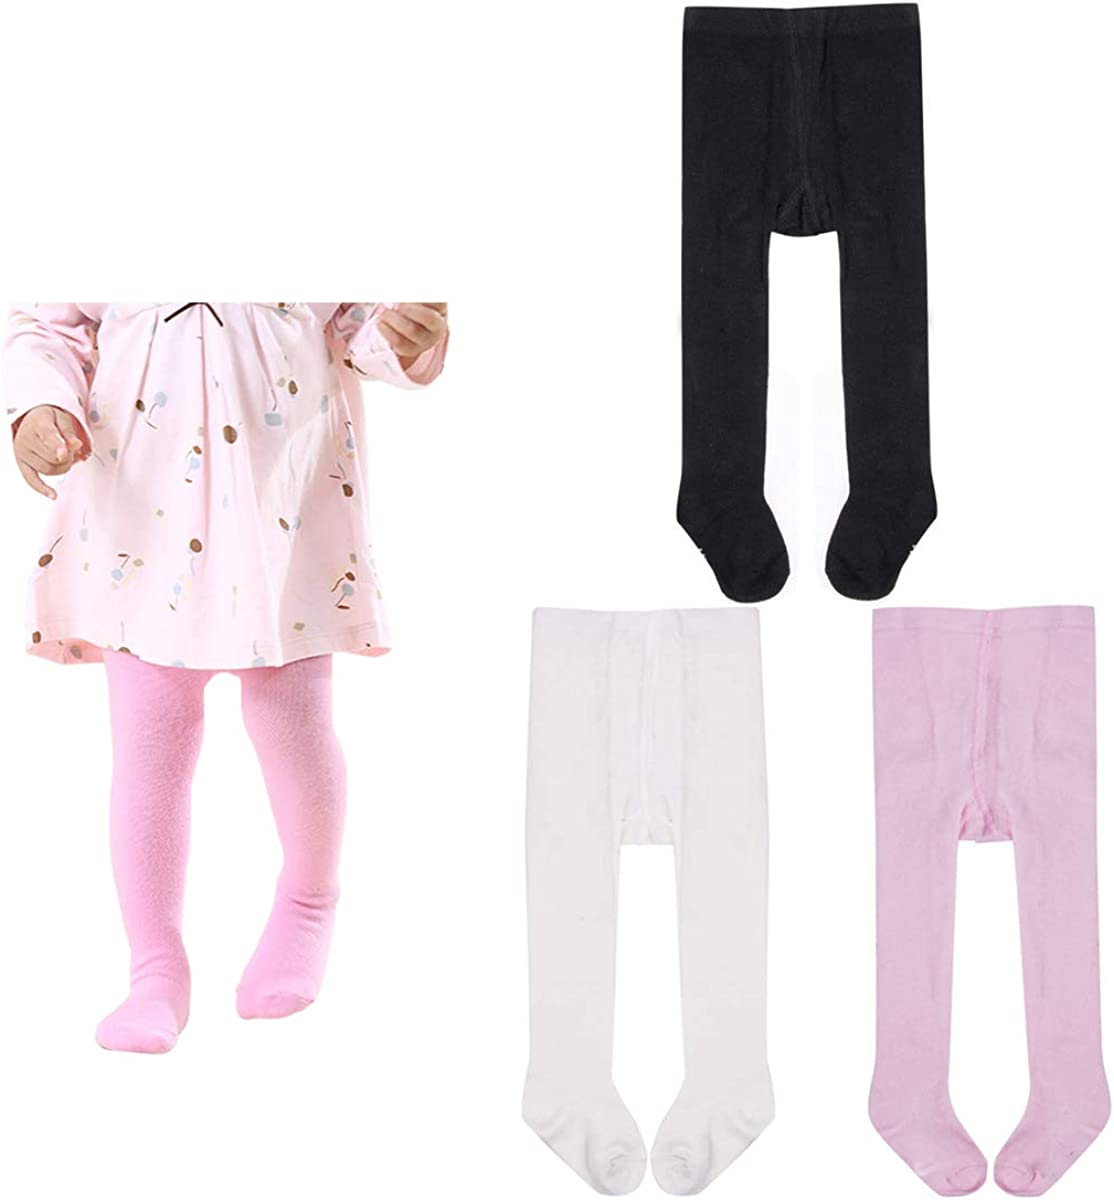 Baby Little Girls Tights Kids Bow Cotton Leggings Stocking Pantyhose 3 Pair Pack